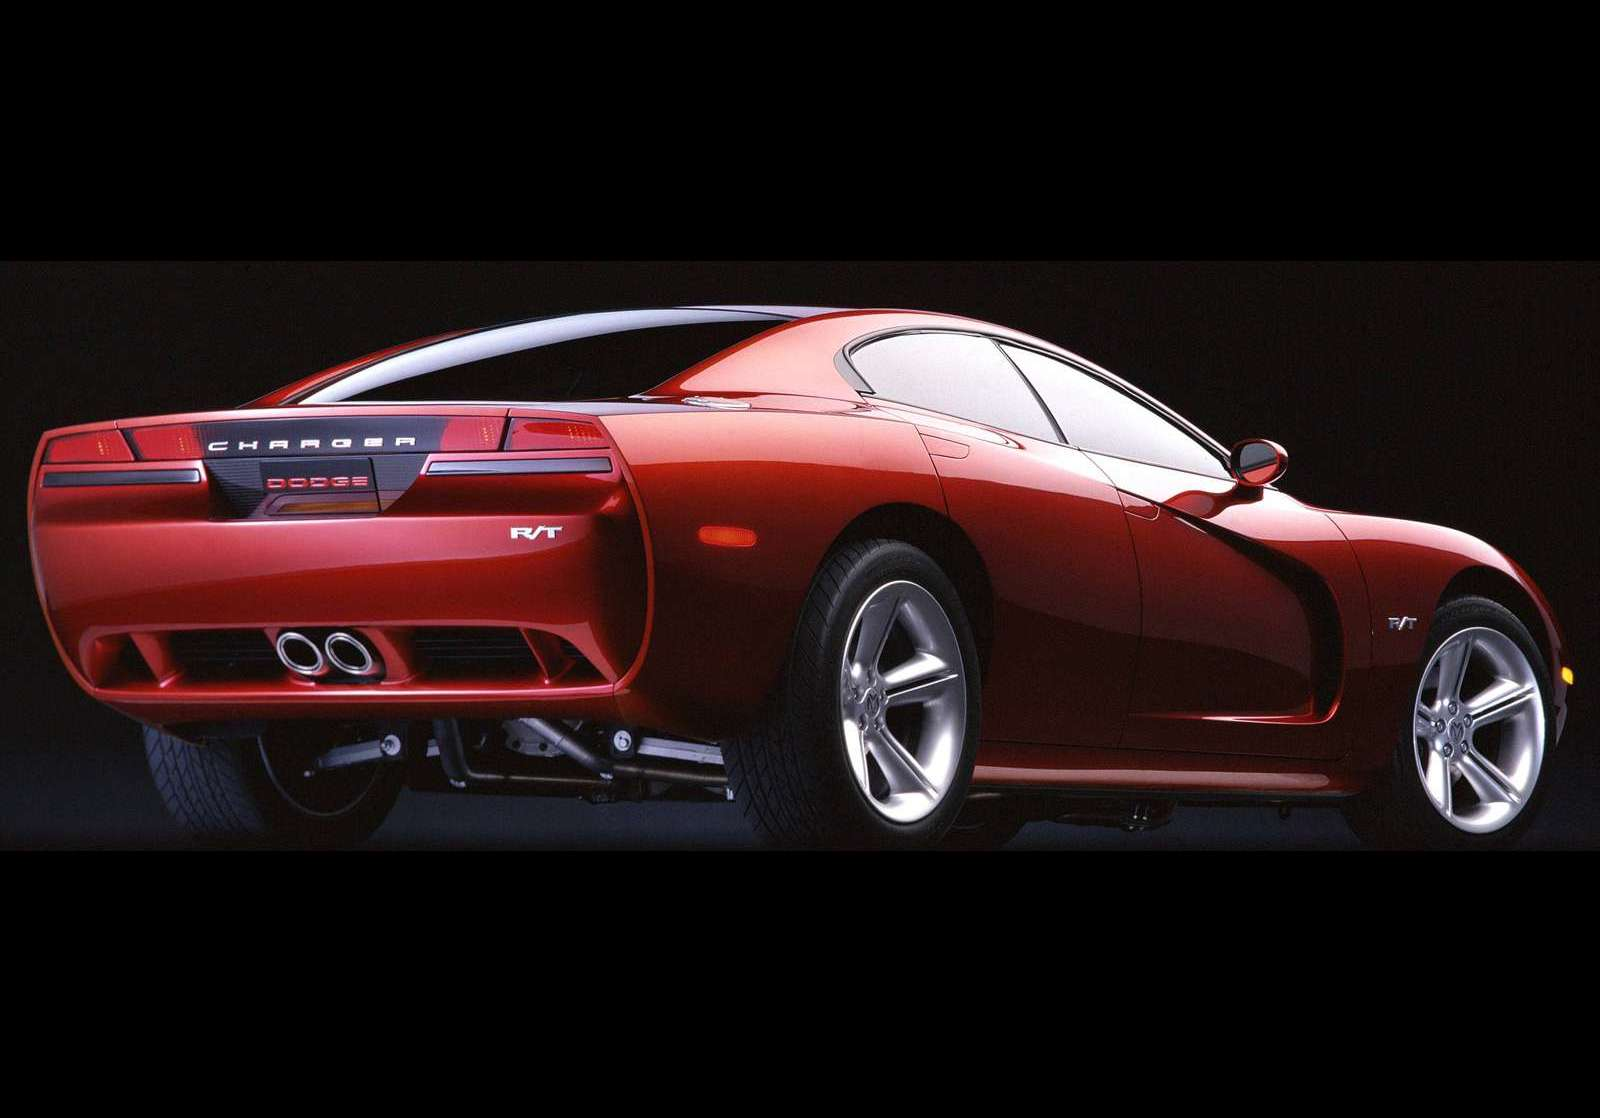 Upcoming Models Presented to Dealers by FCA, Exciting Cars ...